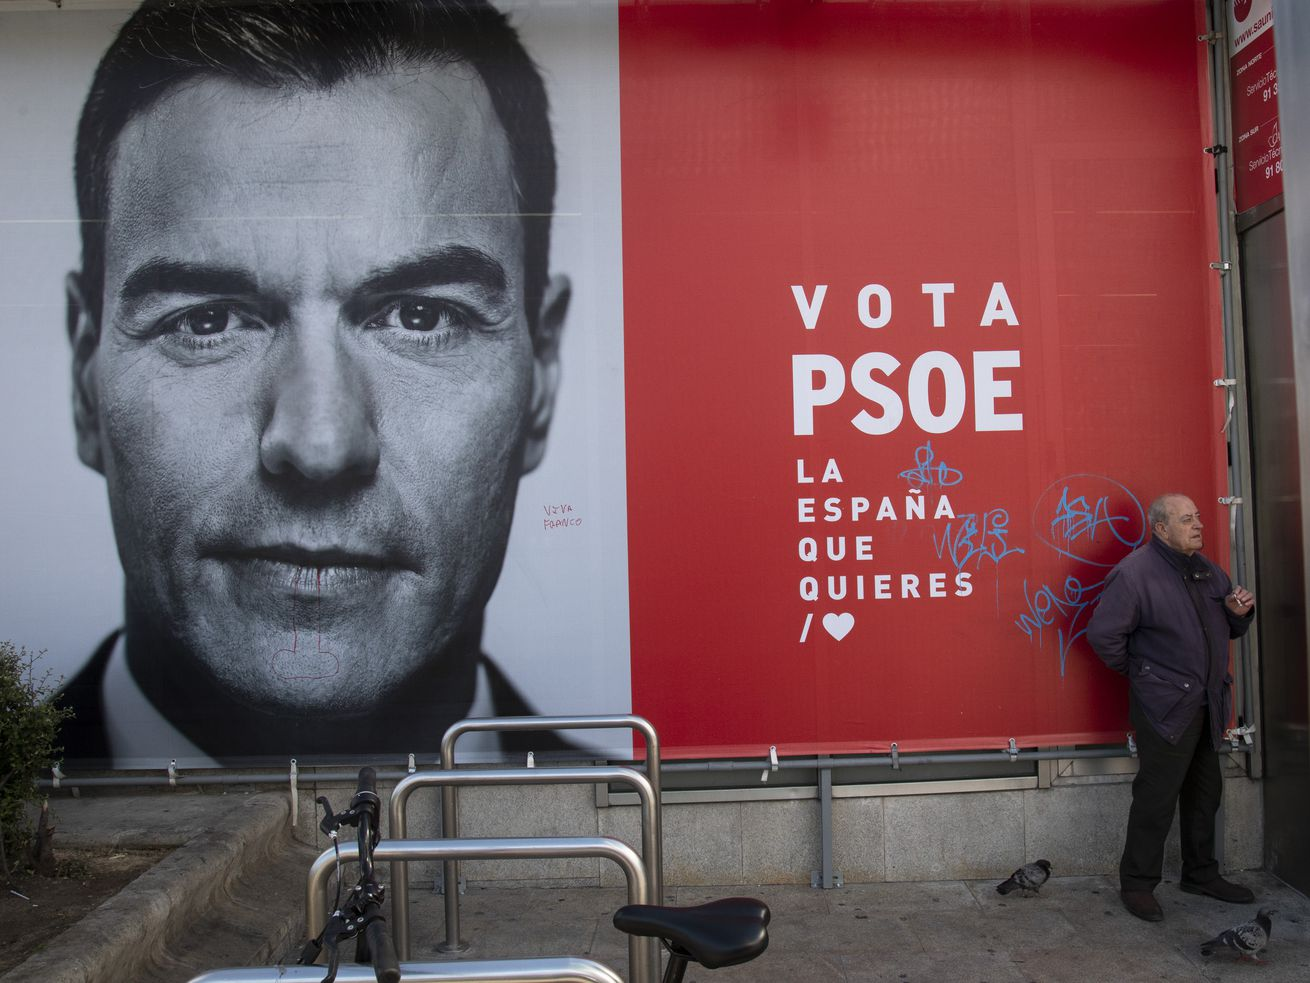 A campaign poster for Pedro Sánchez, leader of PSOE and current prime minister.